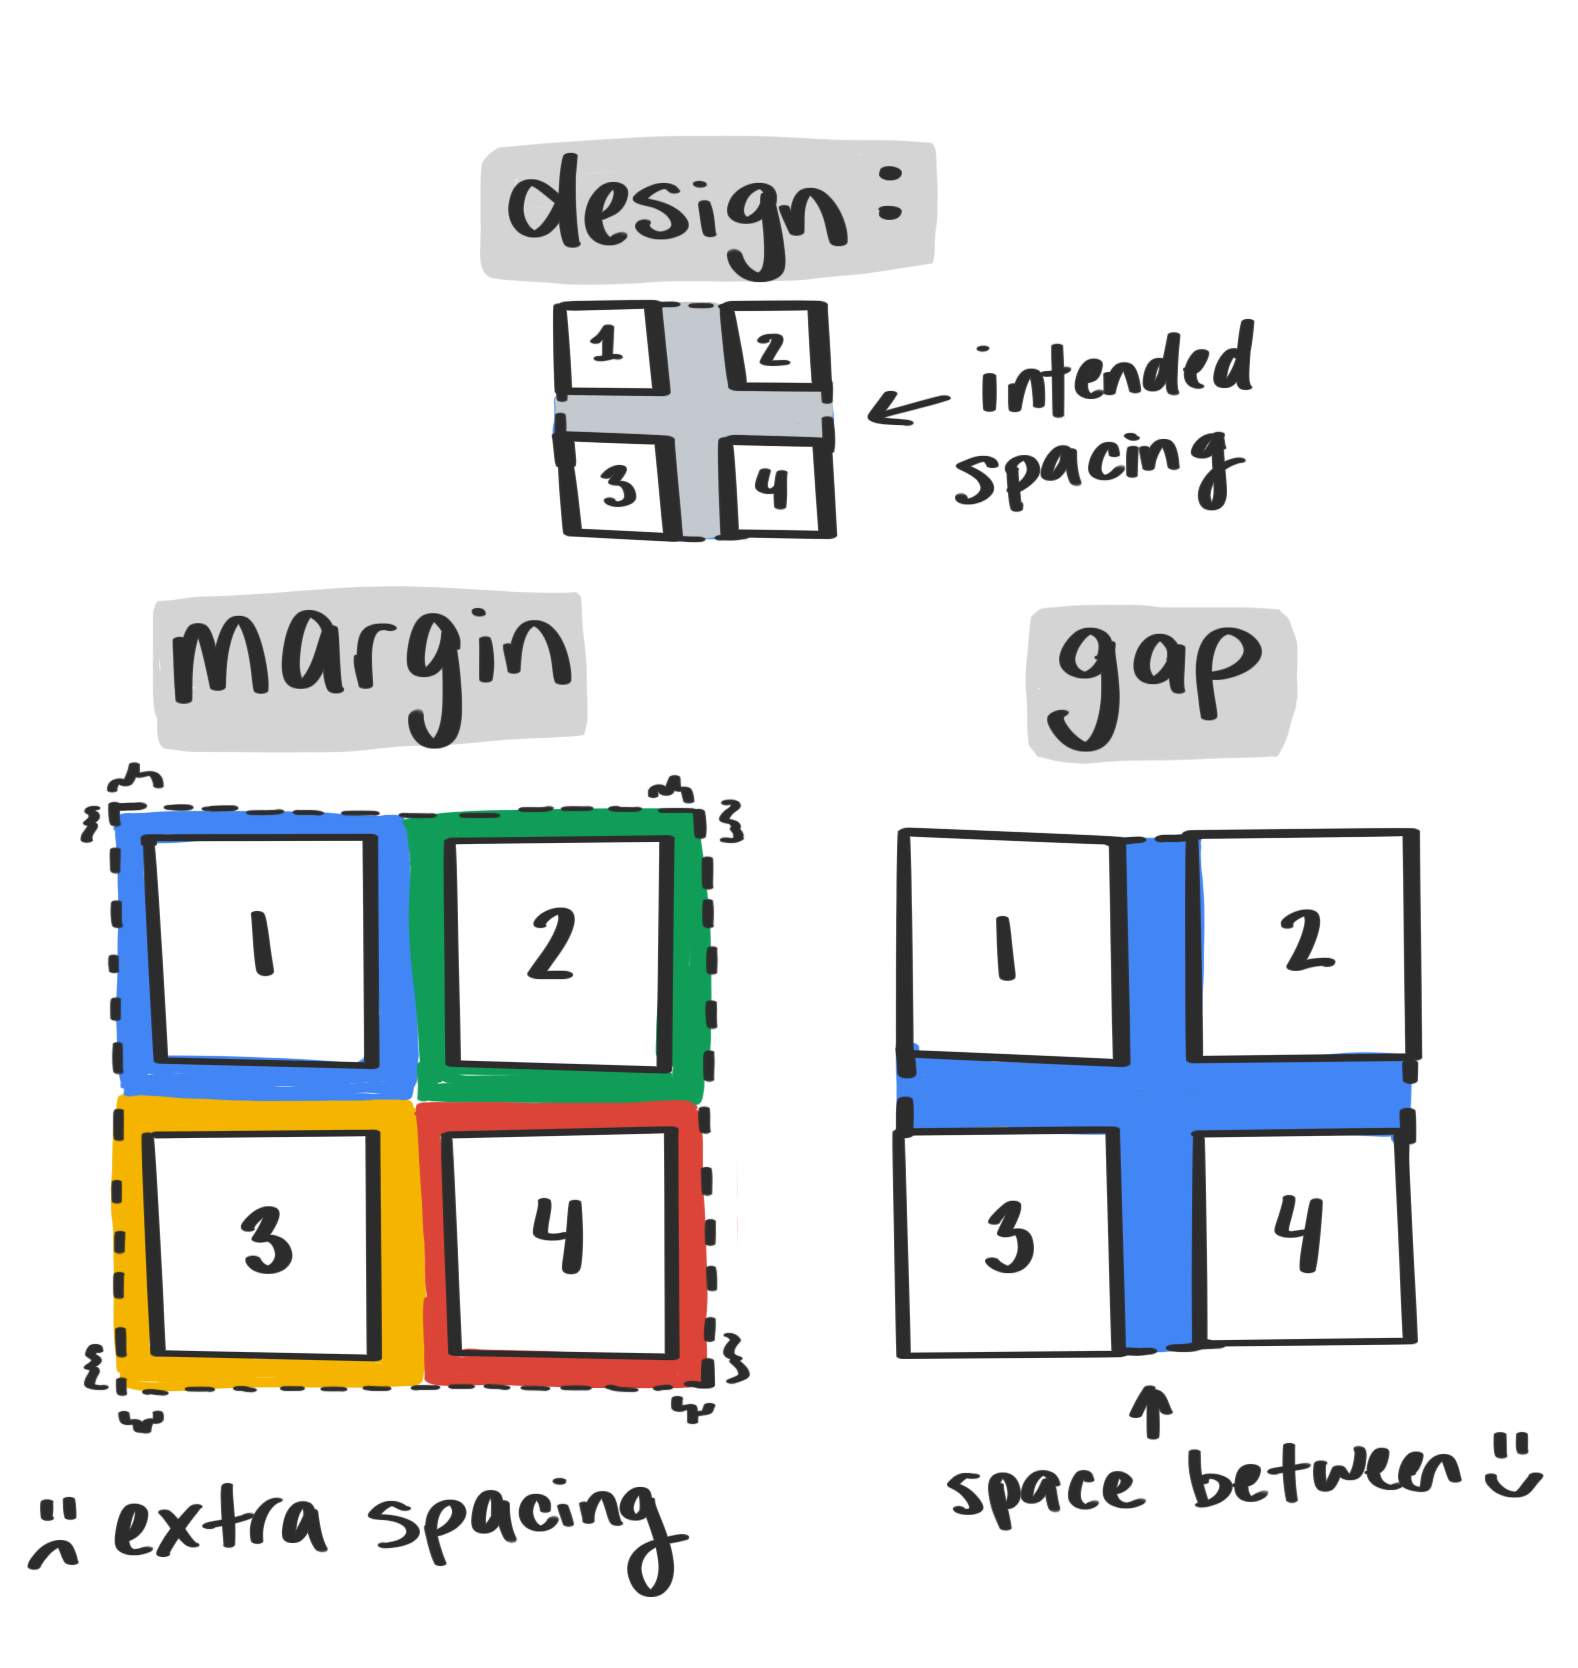 Illustration showing how the gap property avoids unintended spacing around edges of a container element.